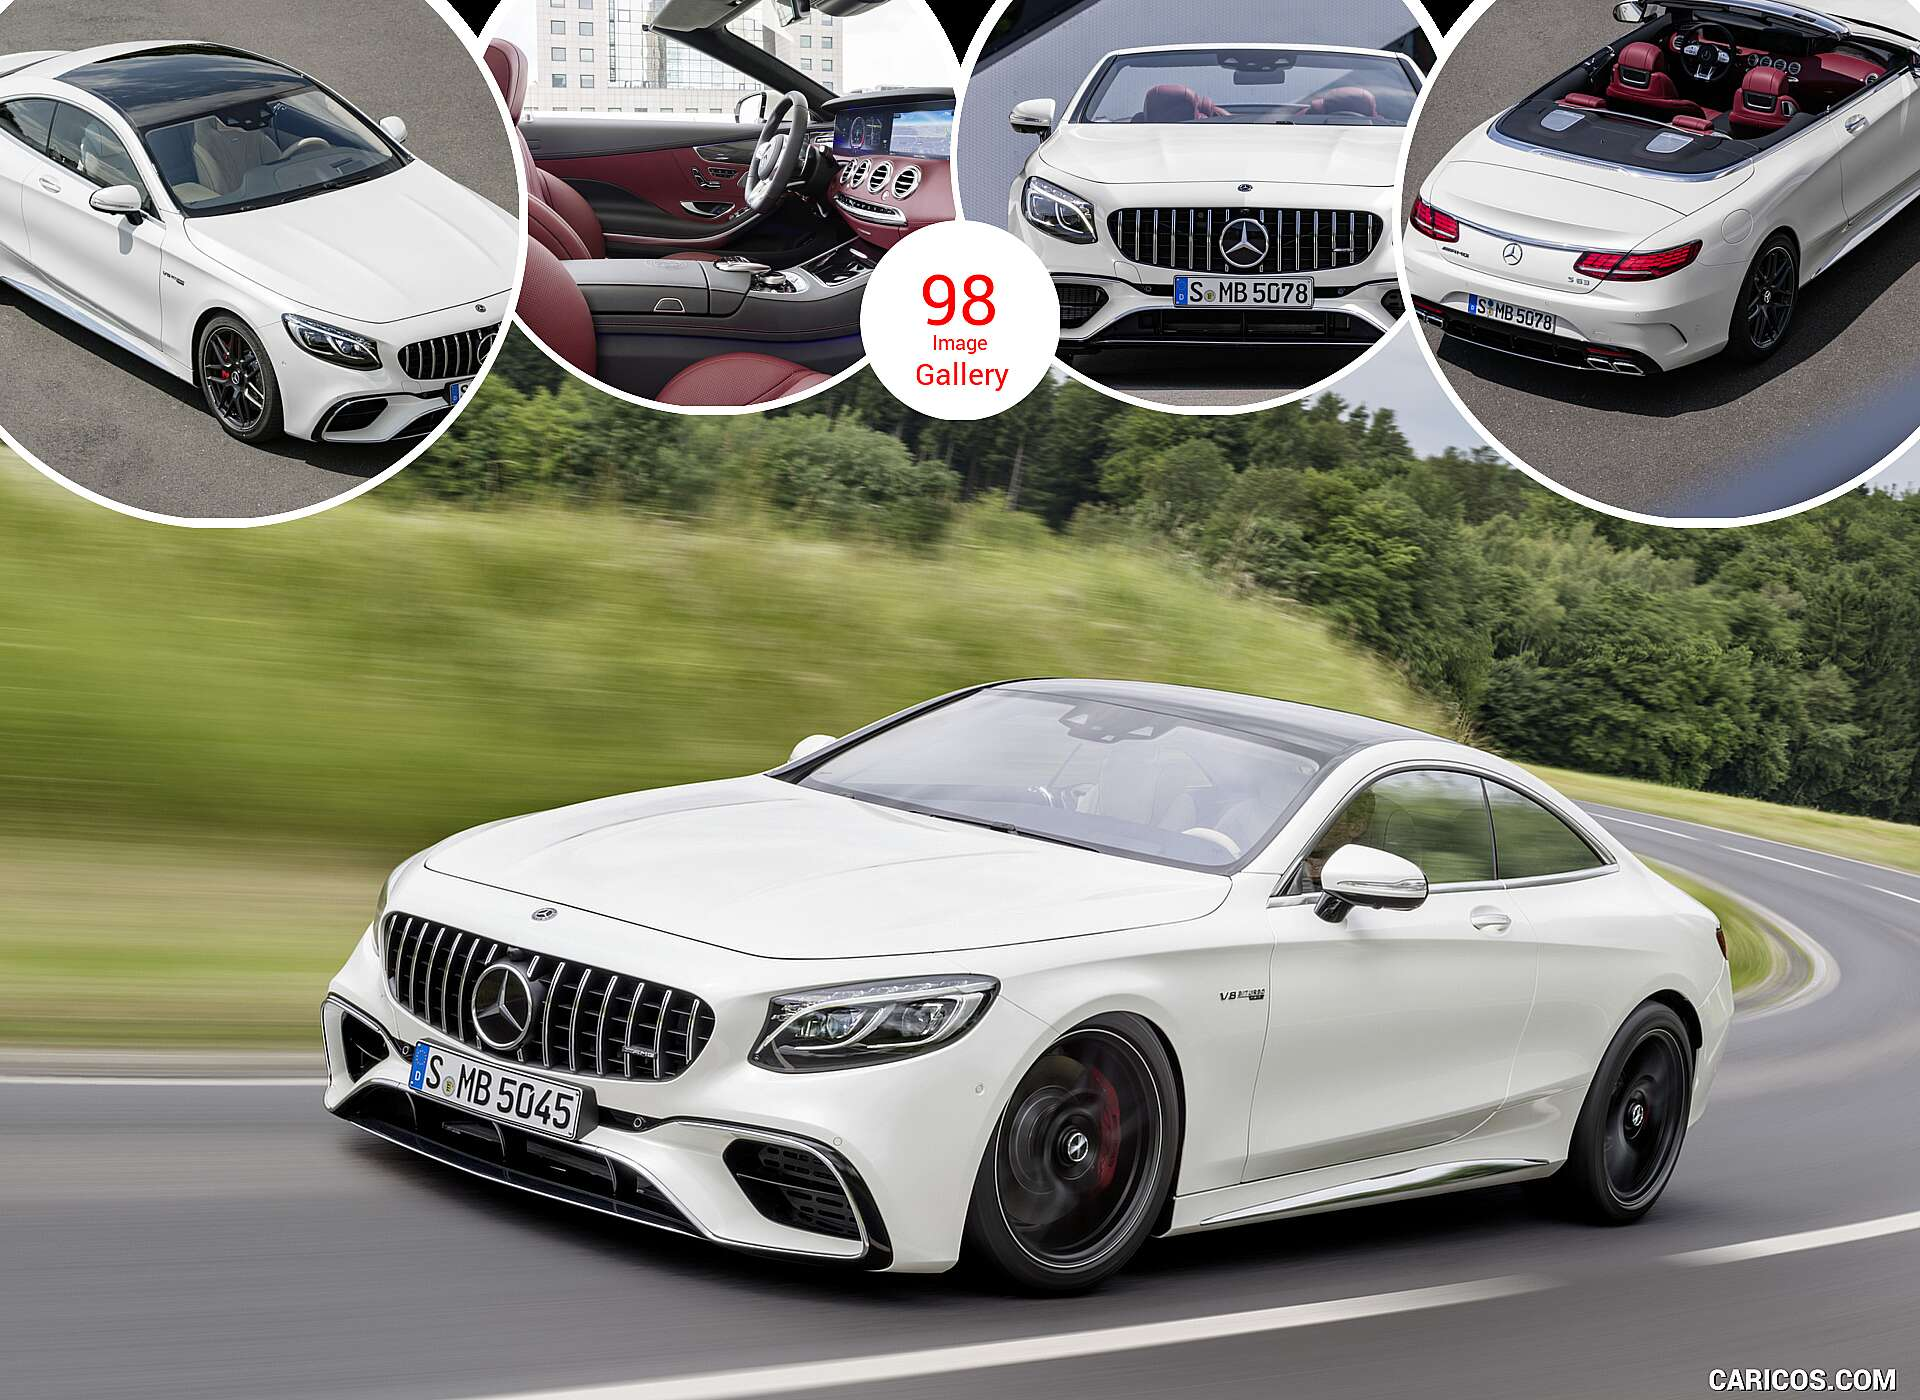 S63 Amg Coupe >> 2018 Mercedes Amg S63 Coupe And Cabriolet Caricos Com